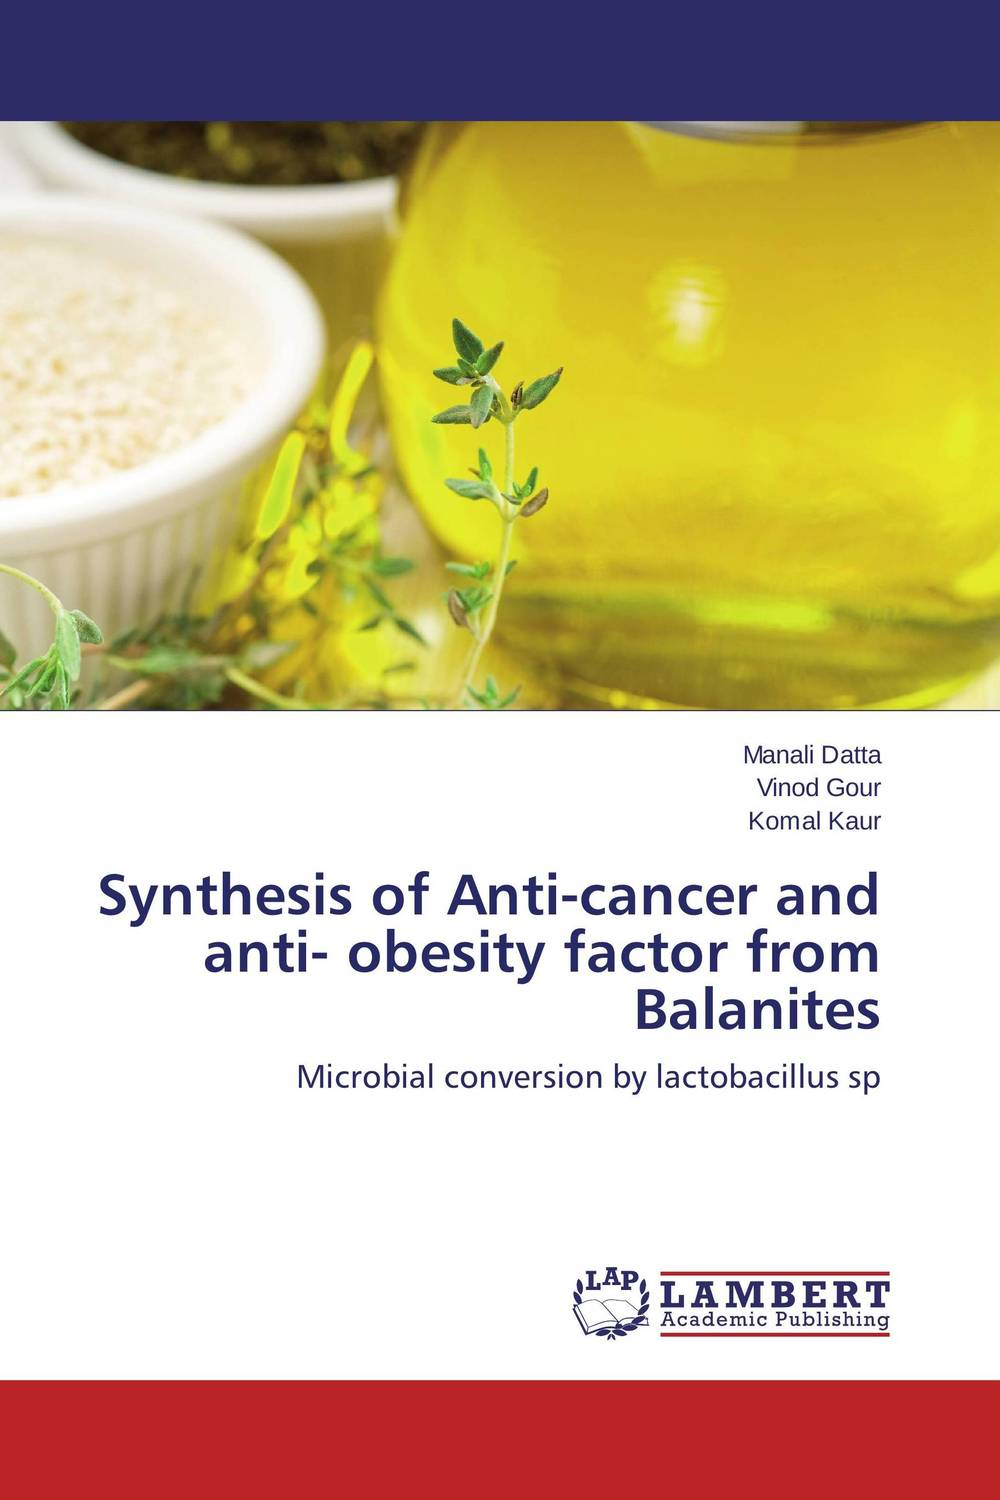 Synthesis of Anti-cancer and anti- obesity factor from Balanites viruses cell transformation and cancer 5